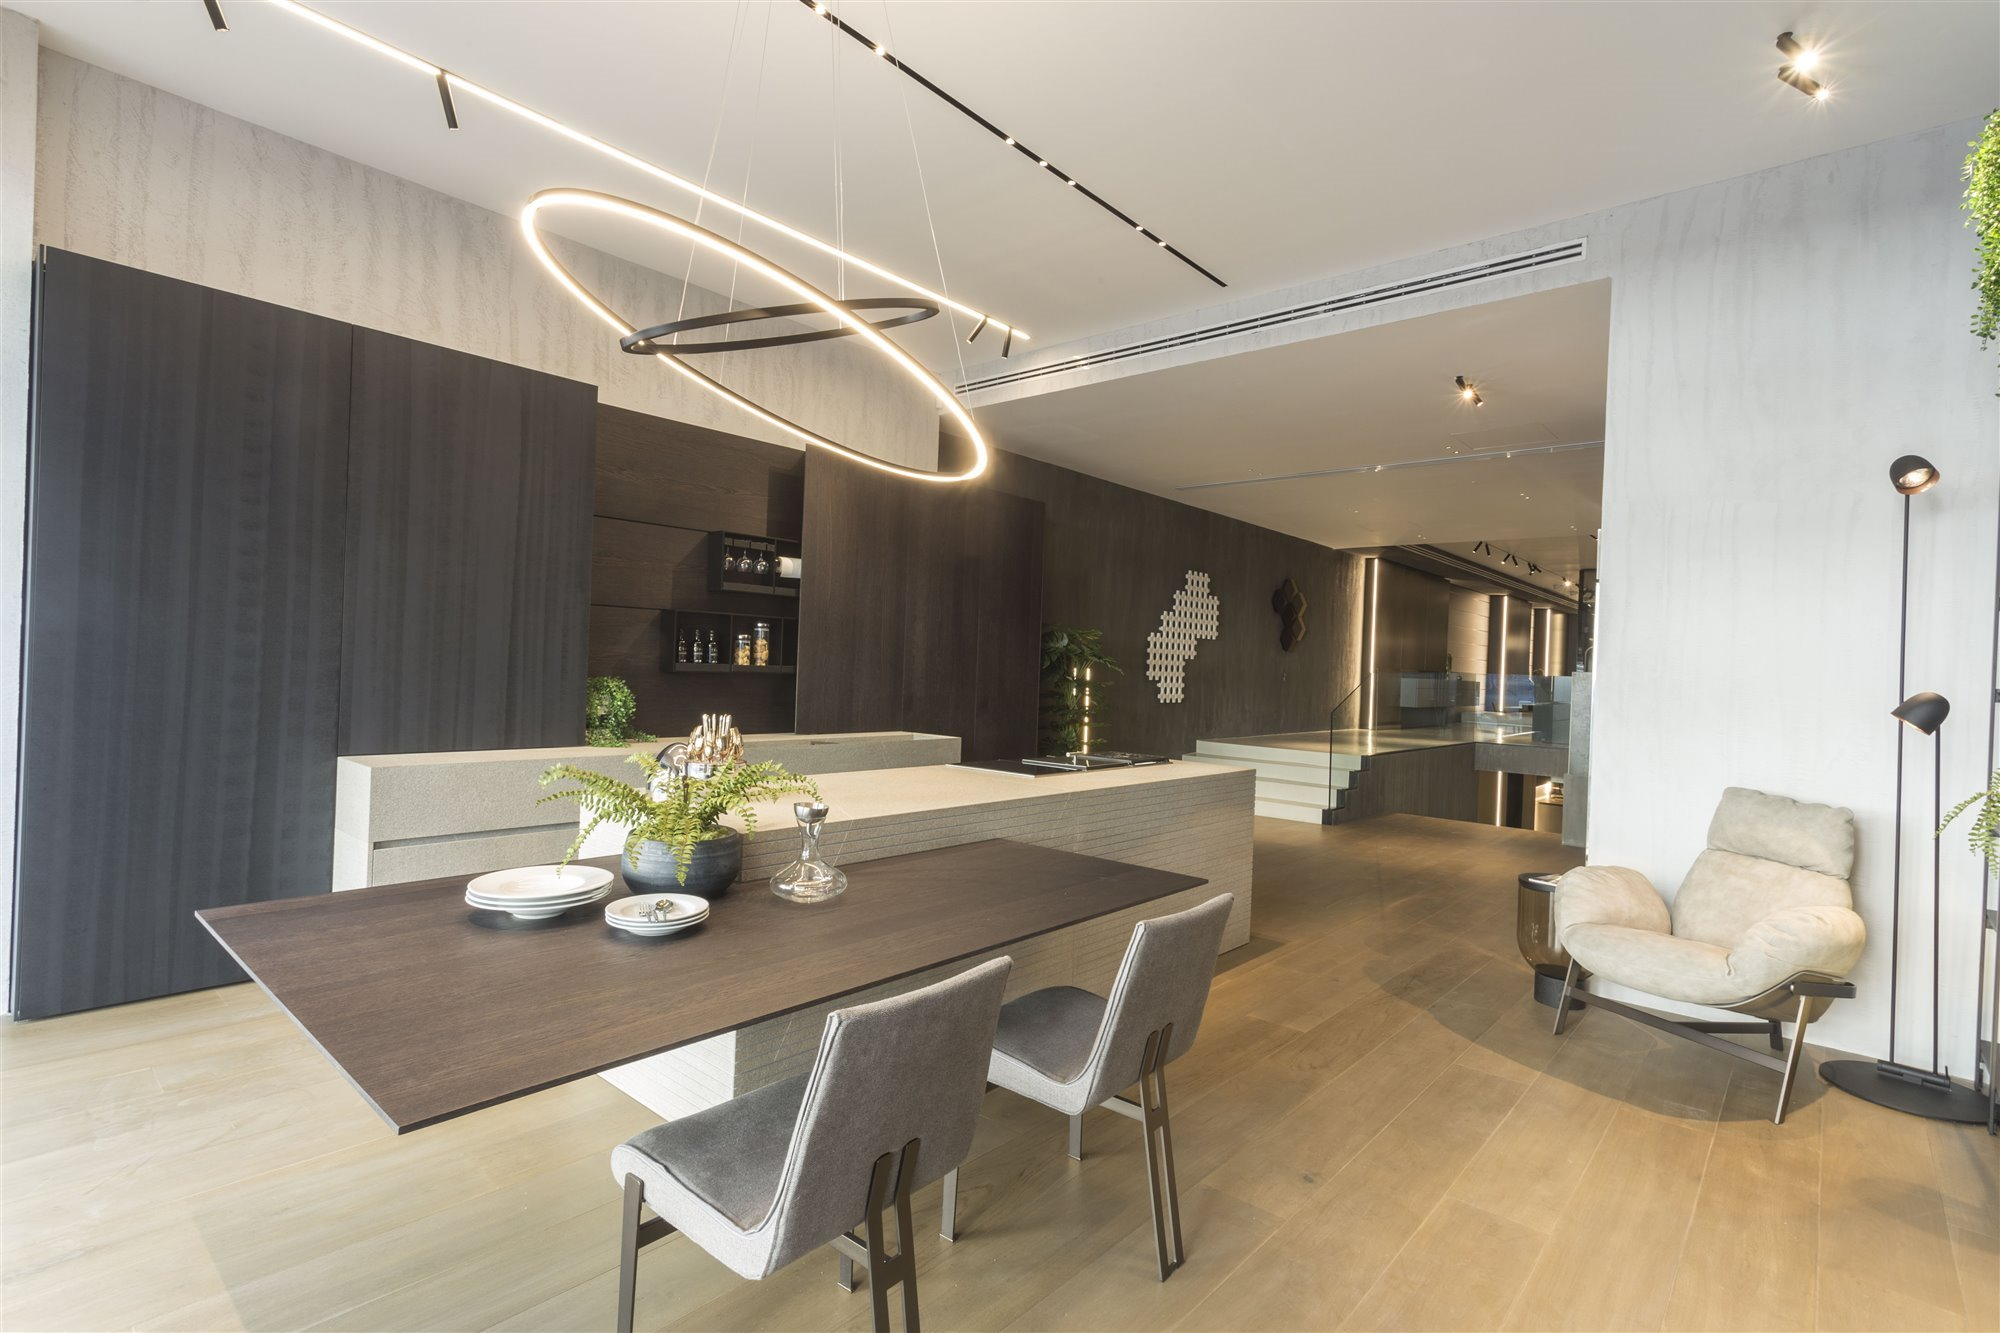 Espacio interior Modulnova Madrid showroom